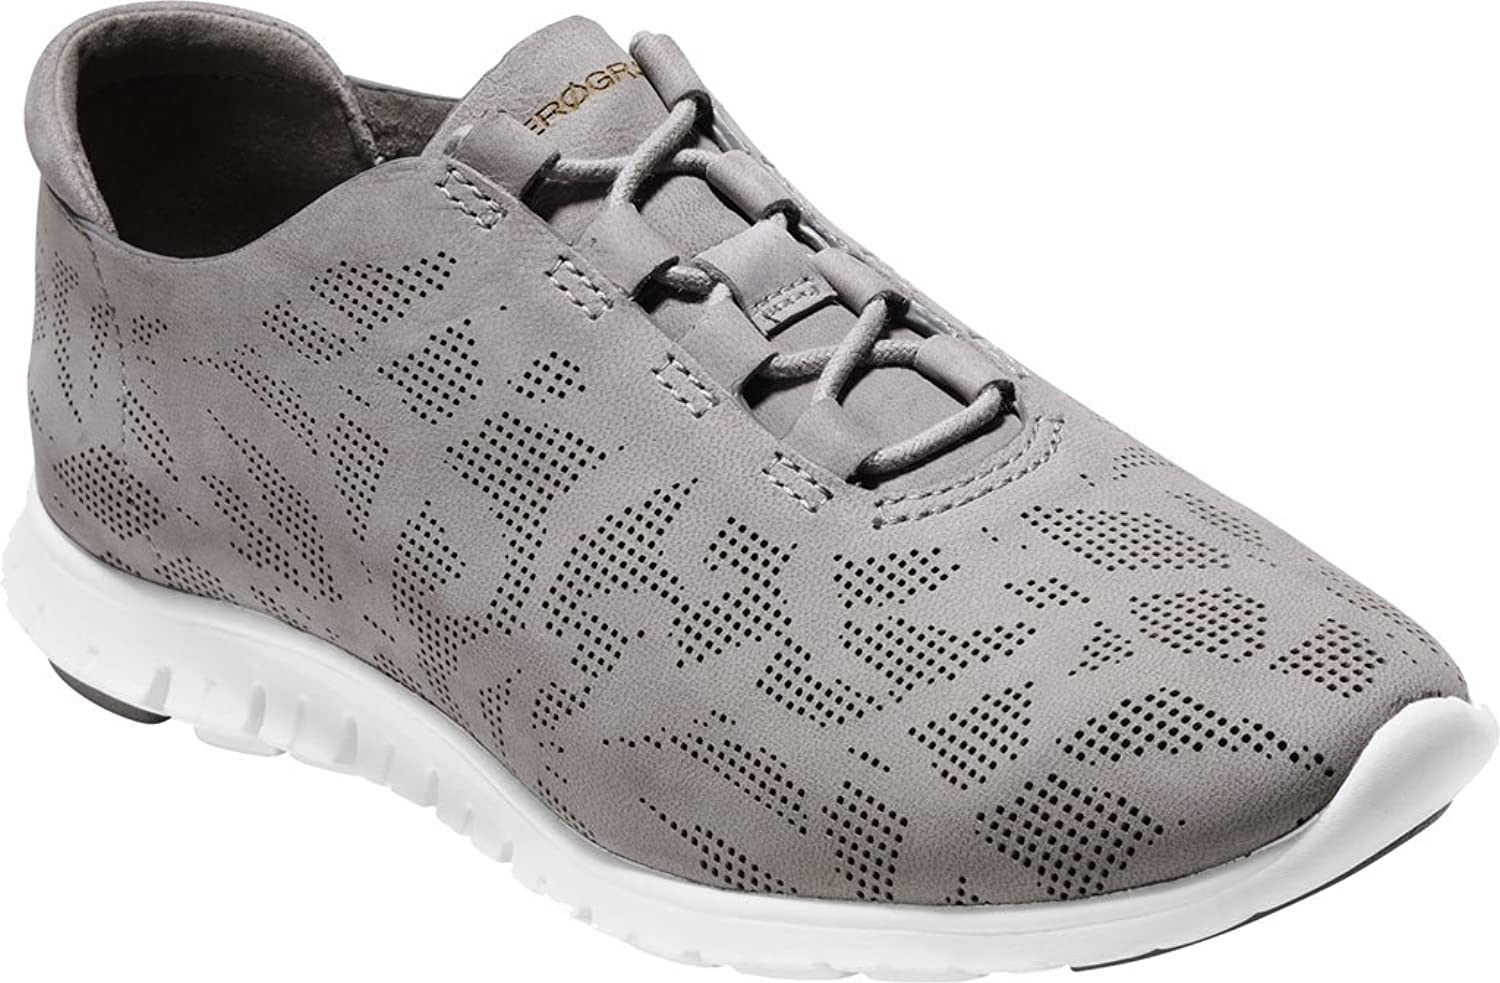 8064967239a6 free shipping Cole Haan Women s Zerogrand Perforated Trainer Fashion Sneaker